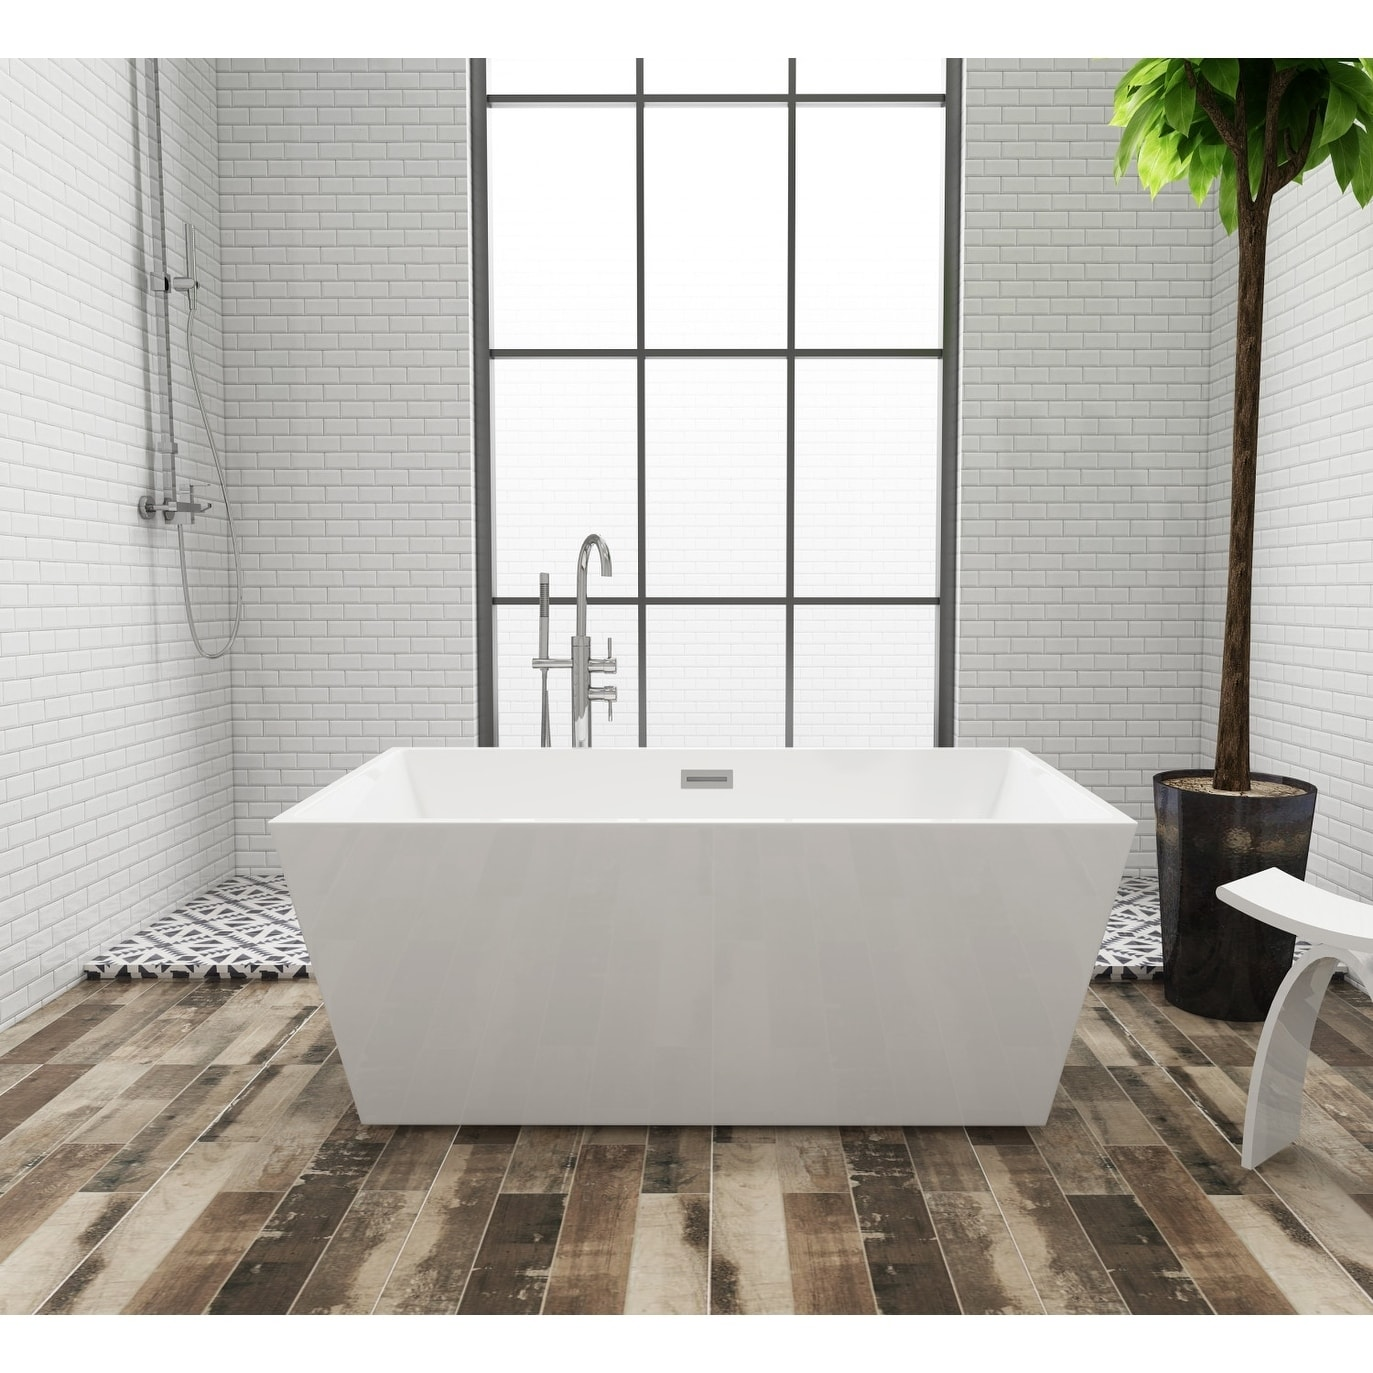 Square 59 X 32 Inch Acrylic Freestanding Bathtub White Overstock 24216227